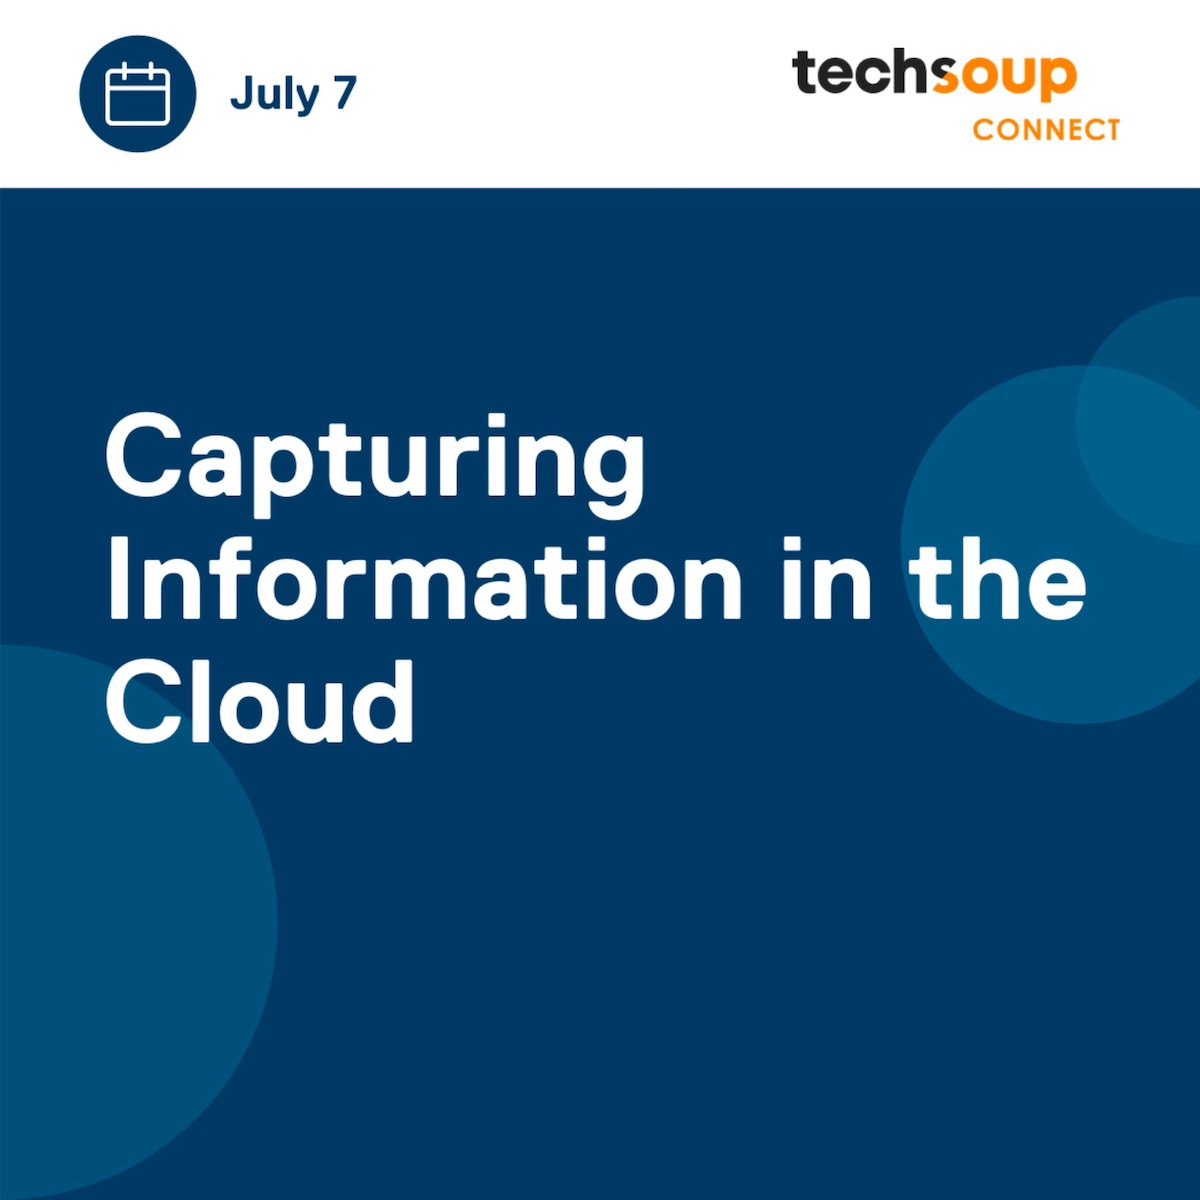 Capturing Information in the Cloud